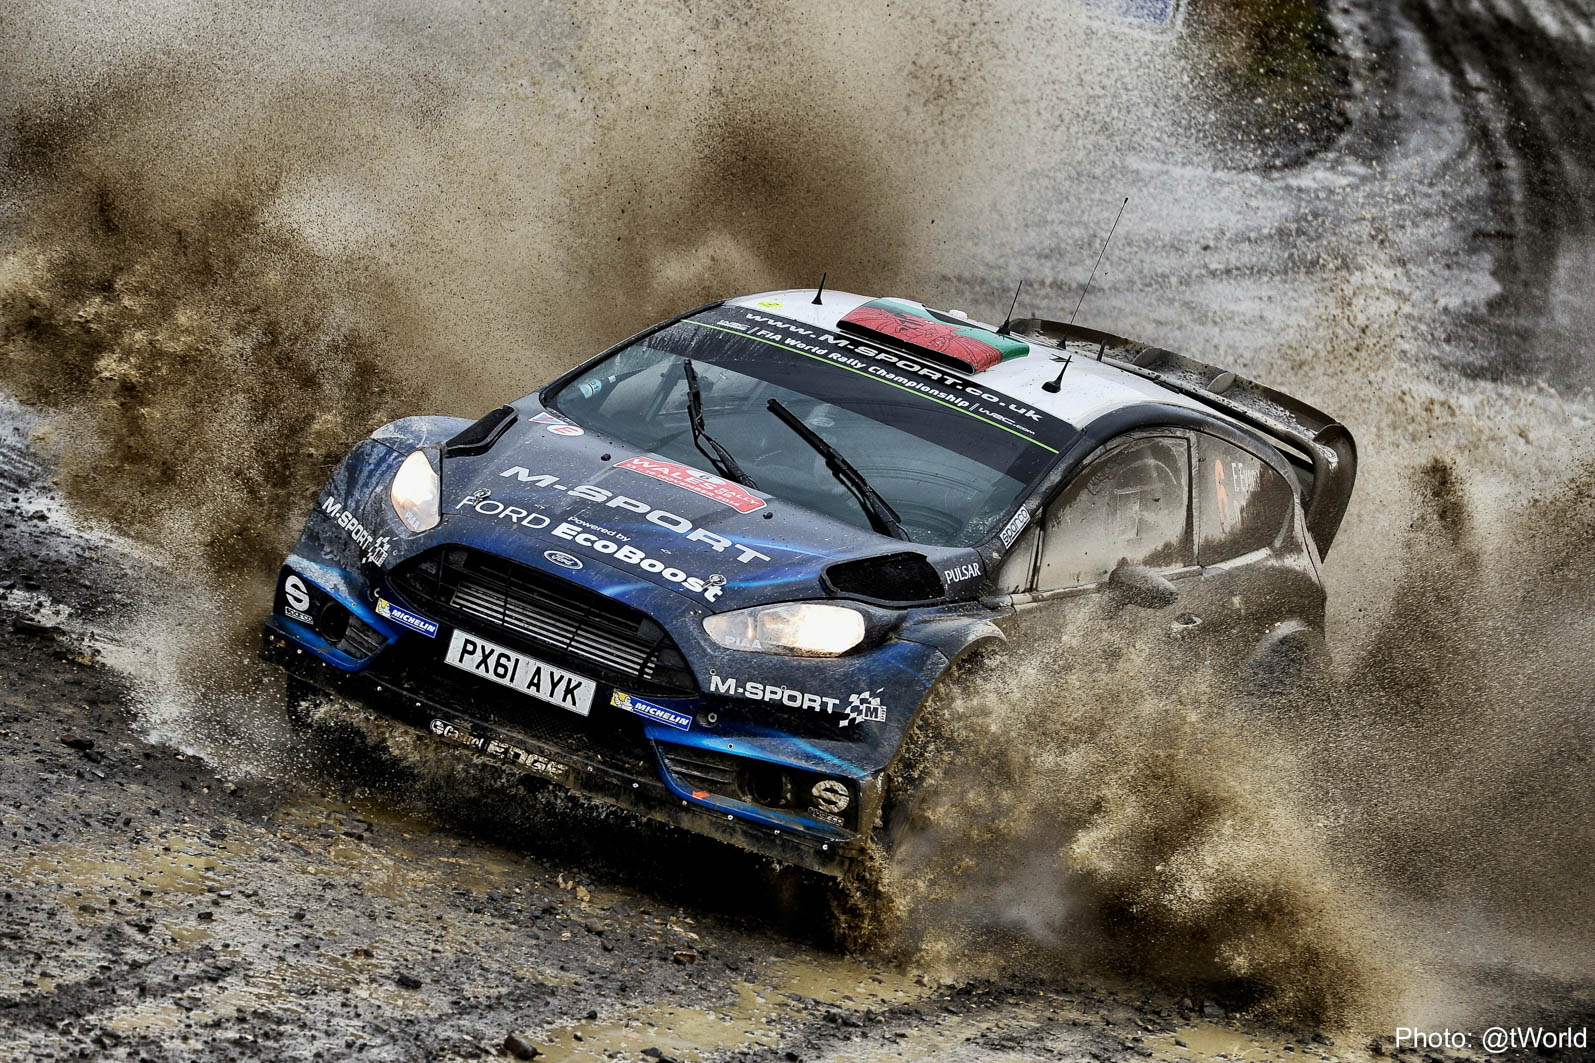 The final countdown to World Championship action | WRC